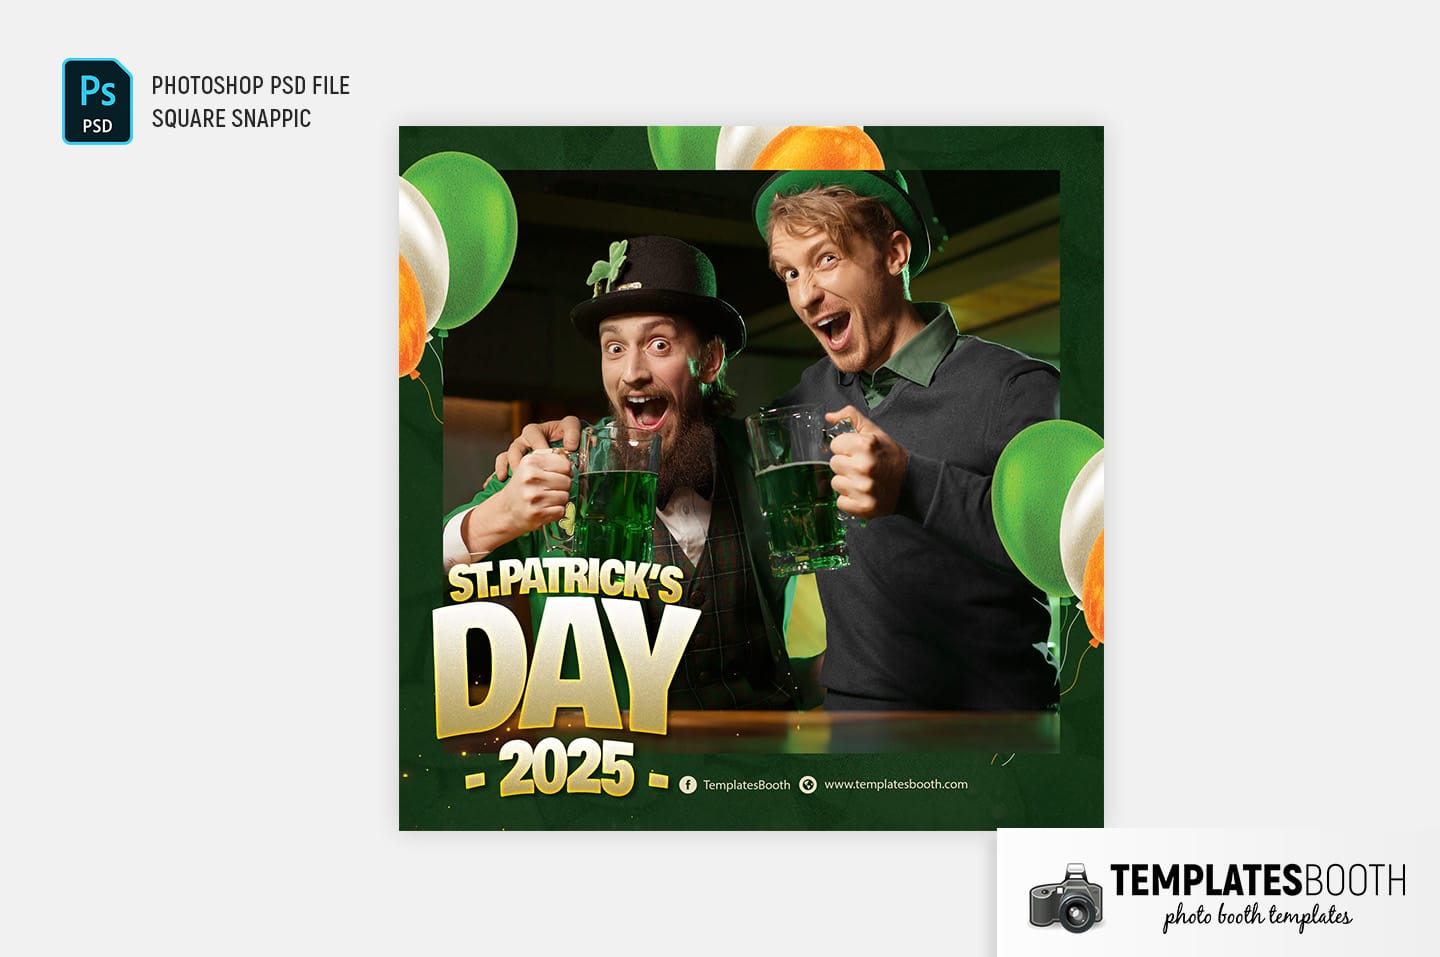 St. Patrick's Day Photo Booth Template (Snappic)